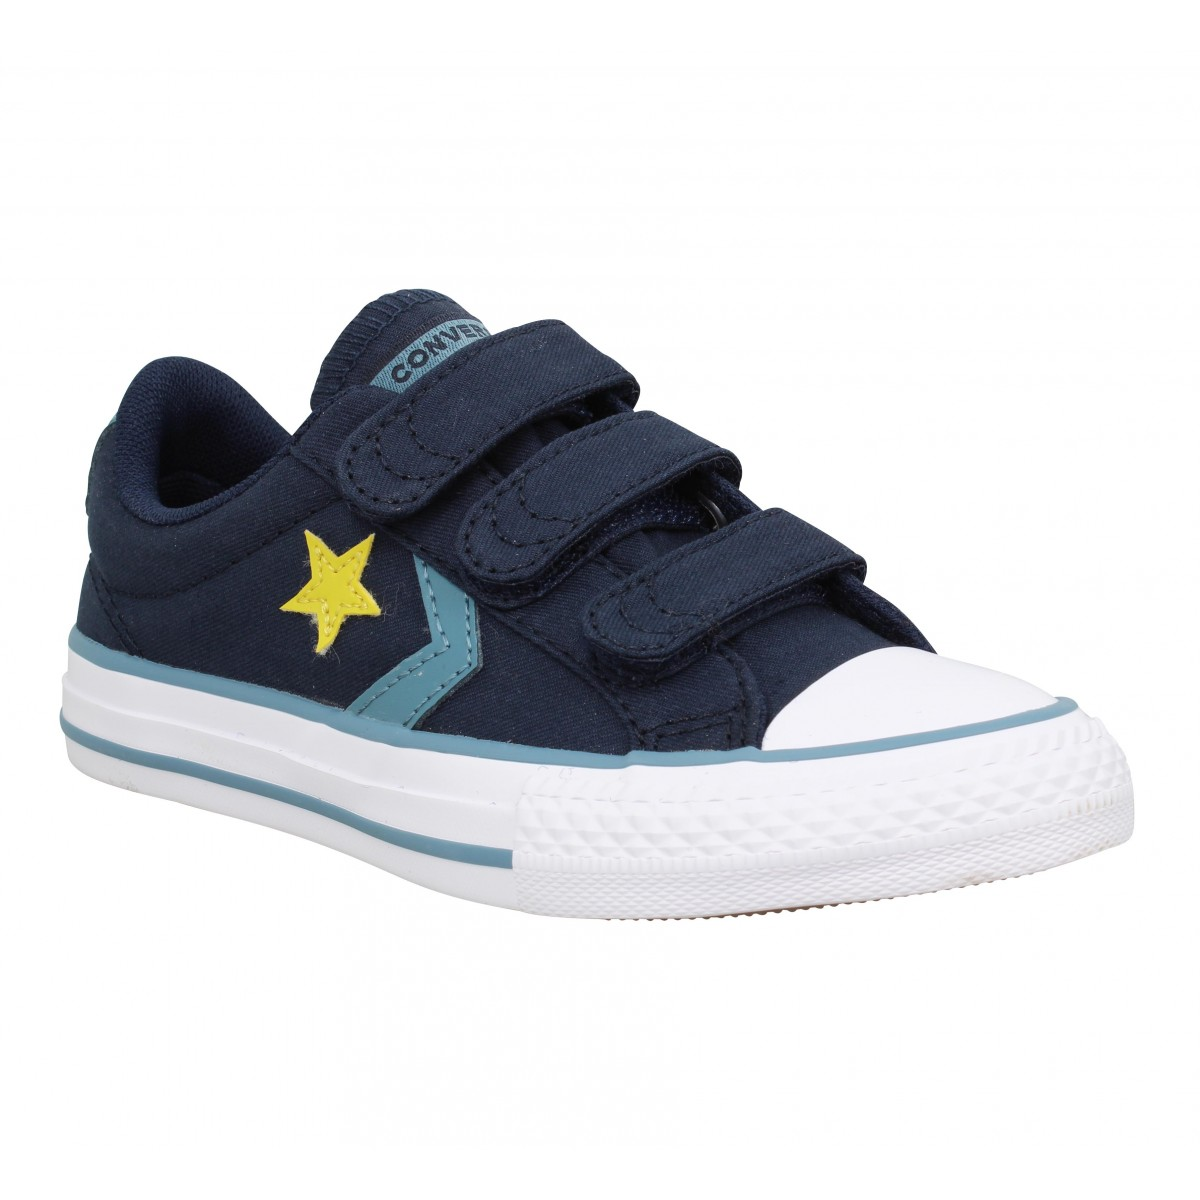 87ad7800d67f3 Converse star player 3v ox toile enfant celeste enfants